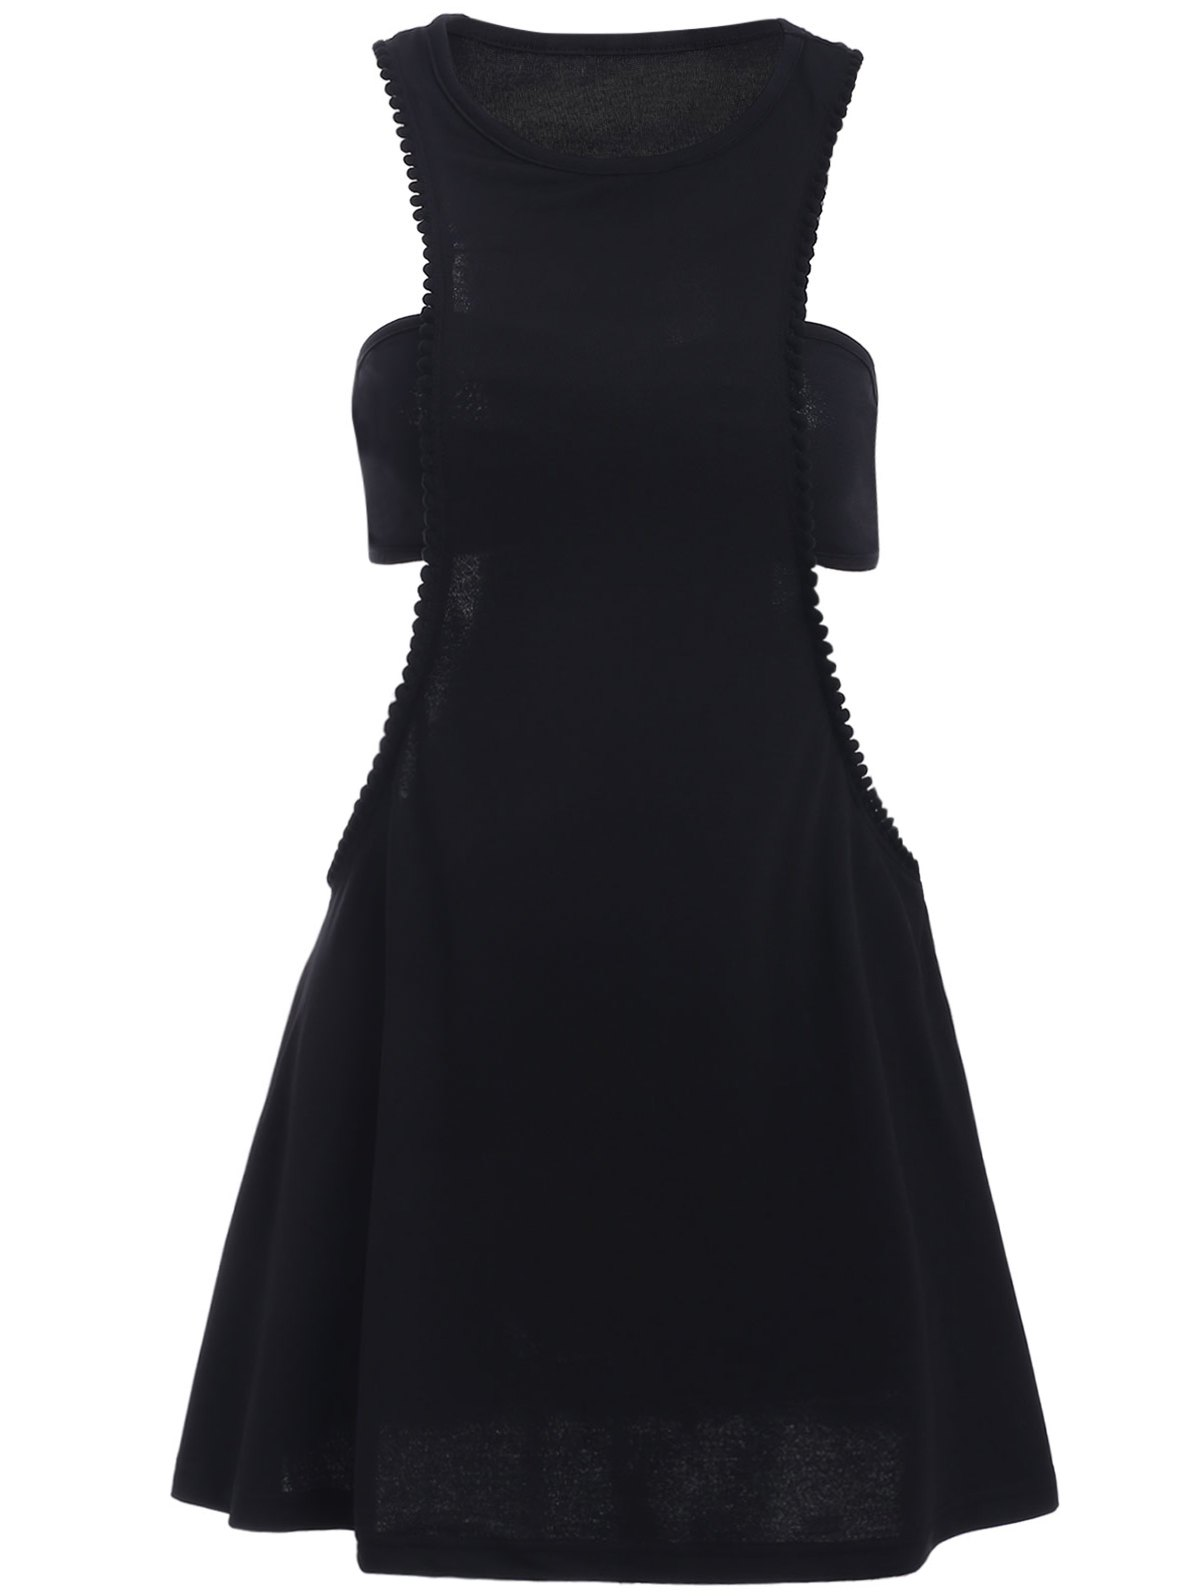 Round Neck Sleeveless Black Cut Out Mini Dress